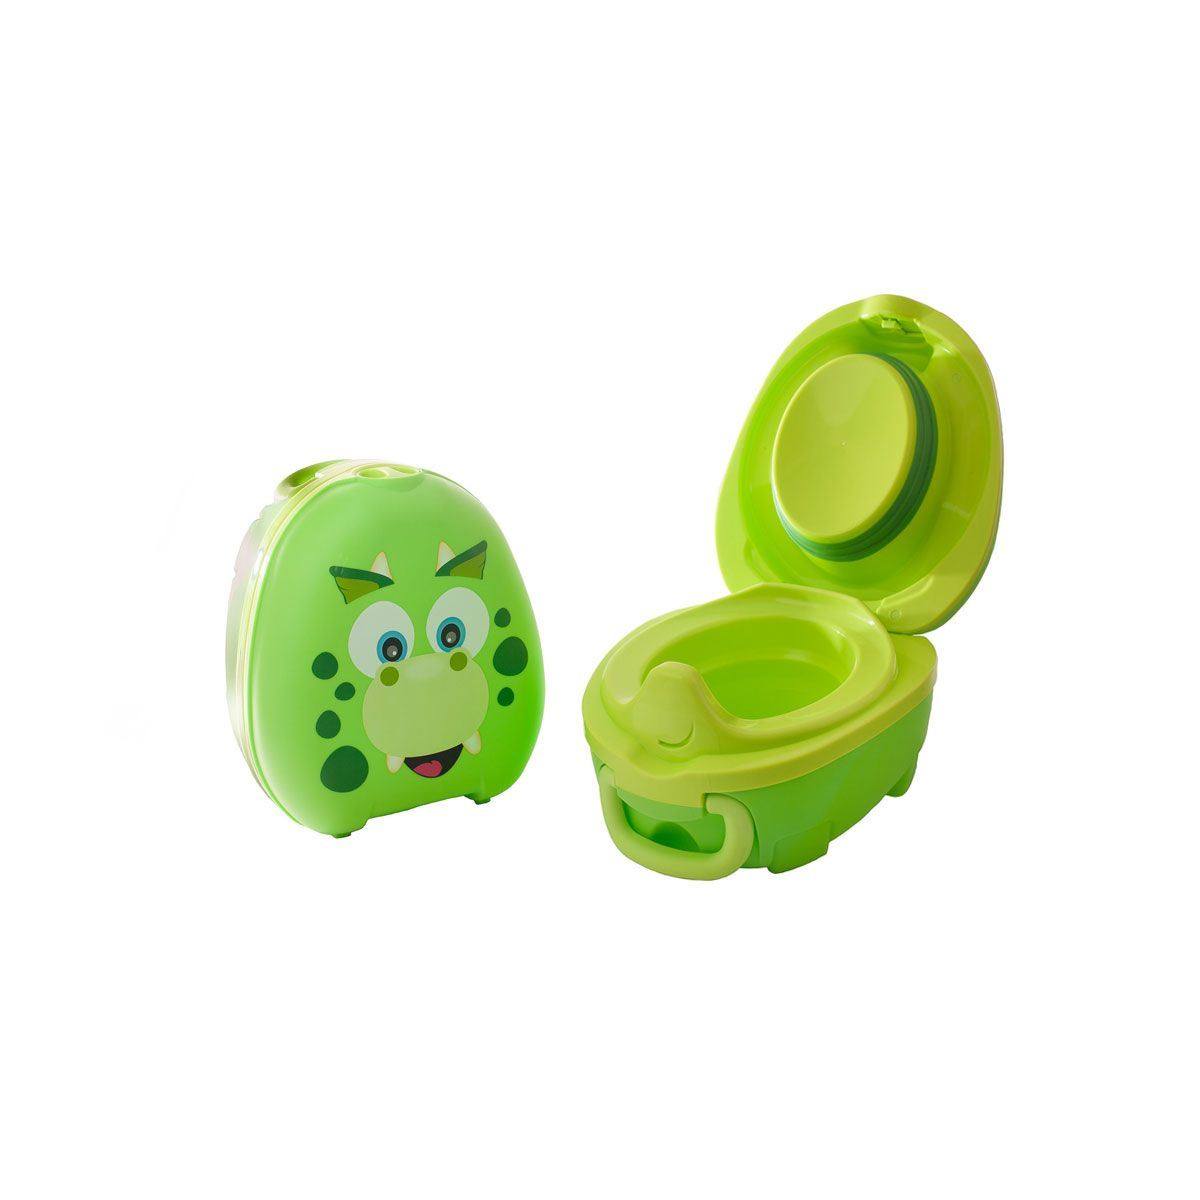 My Carry Potty Child Toddler Portable Travel Potty Training No Leaks BEE